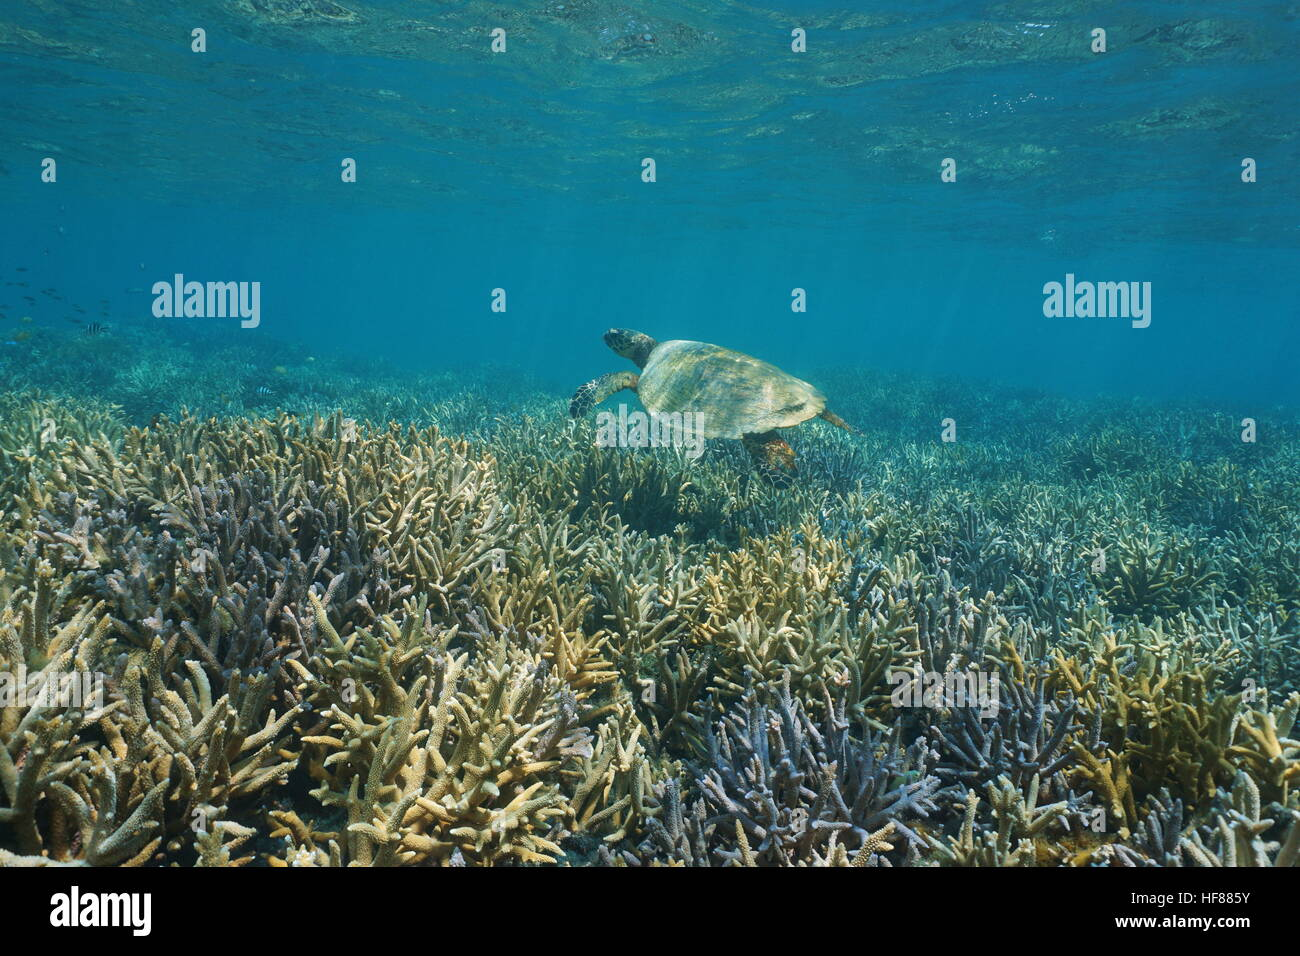 Healthy coral reef underwater with an hawksbill sea turtle above staghorn corals, south Pacific ocean, New Caledonia - Stock Image